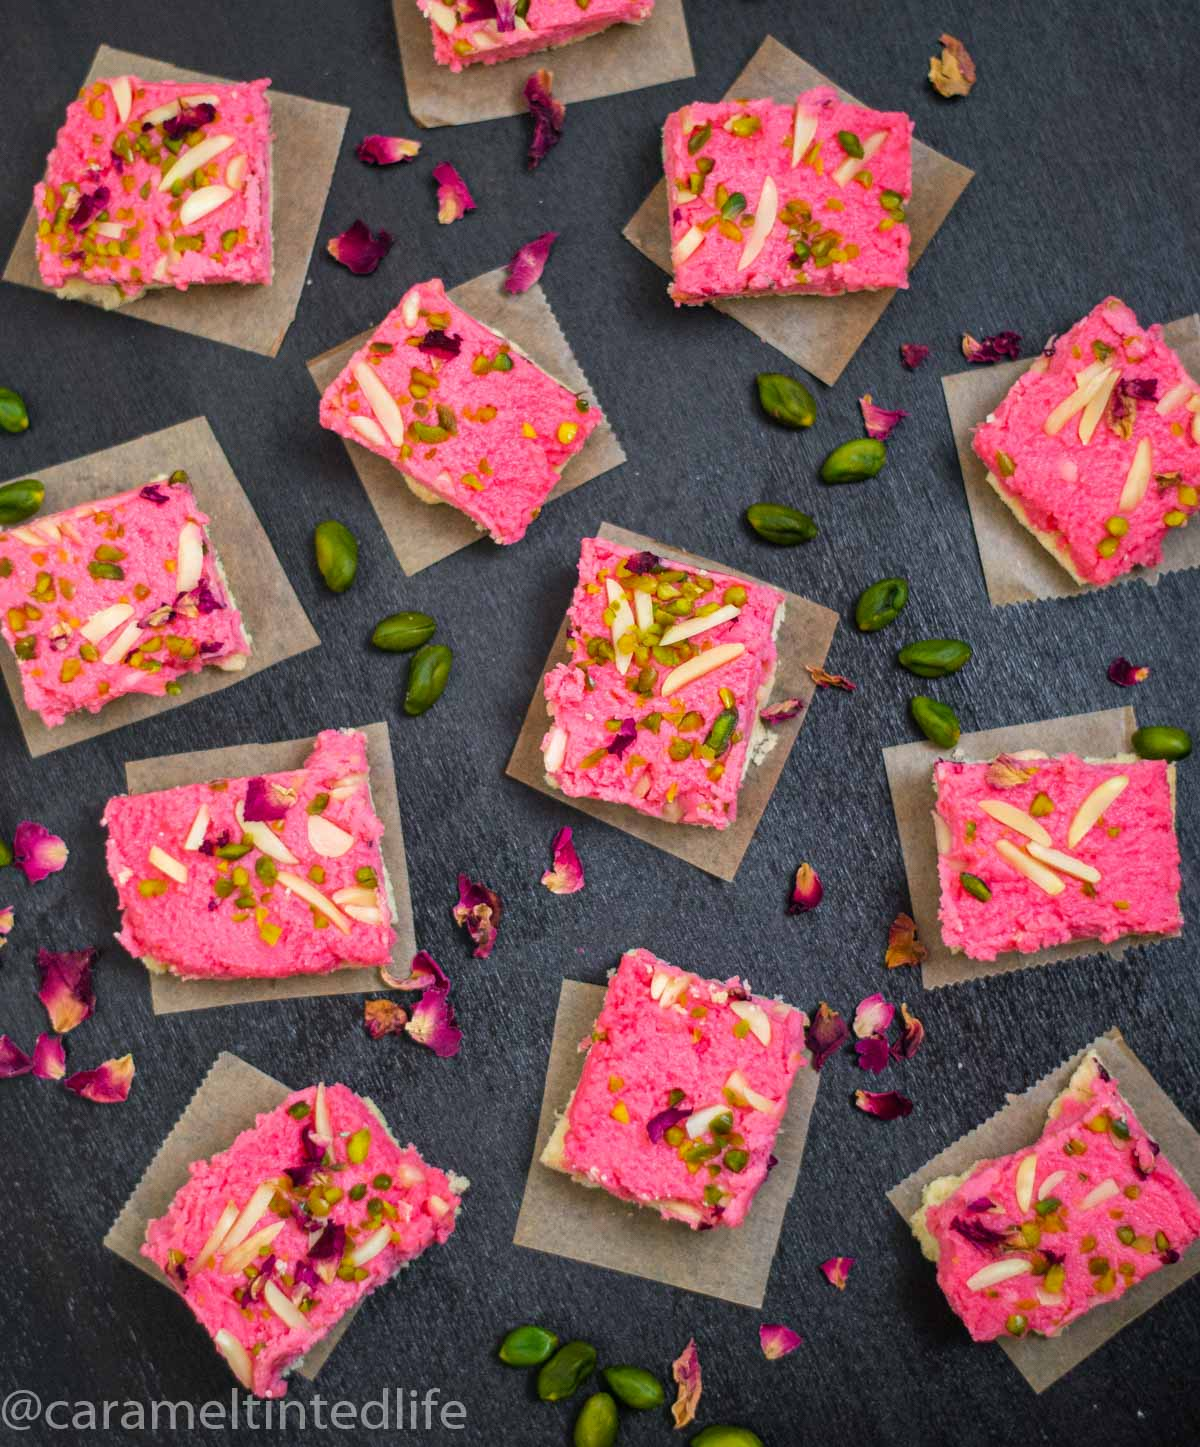 Kalakand squares on a black background viewed from the top, with scattered pistachios and rose petals